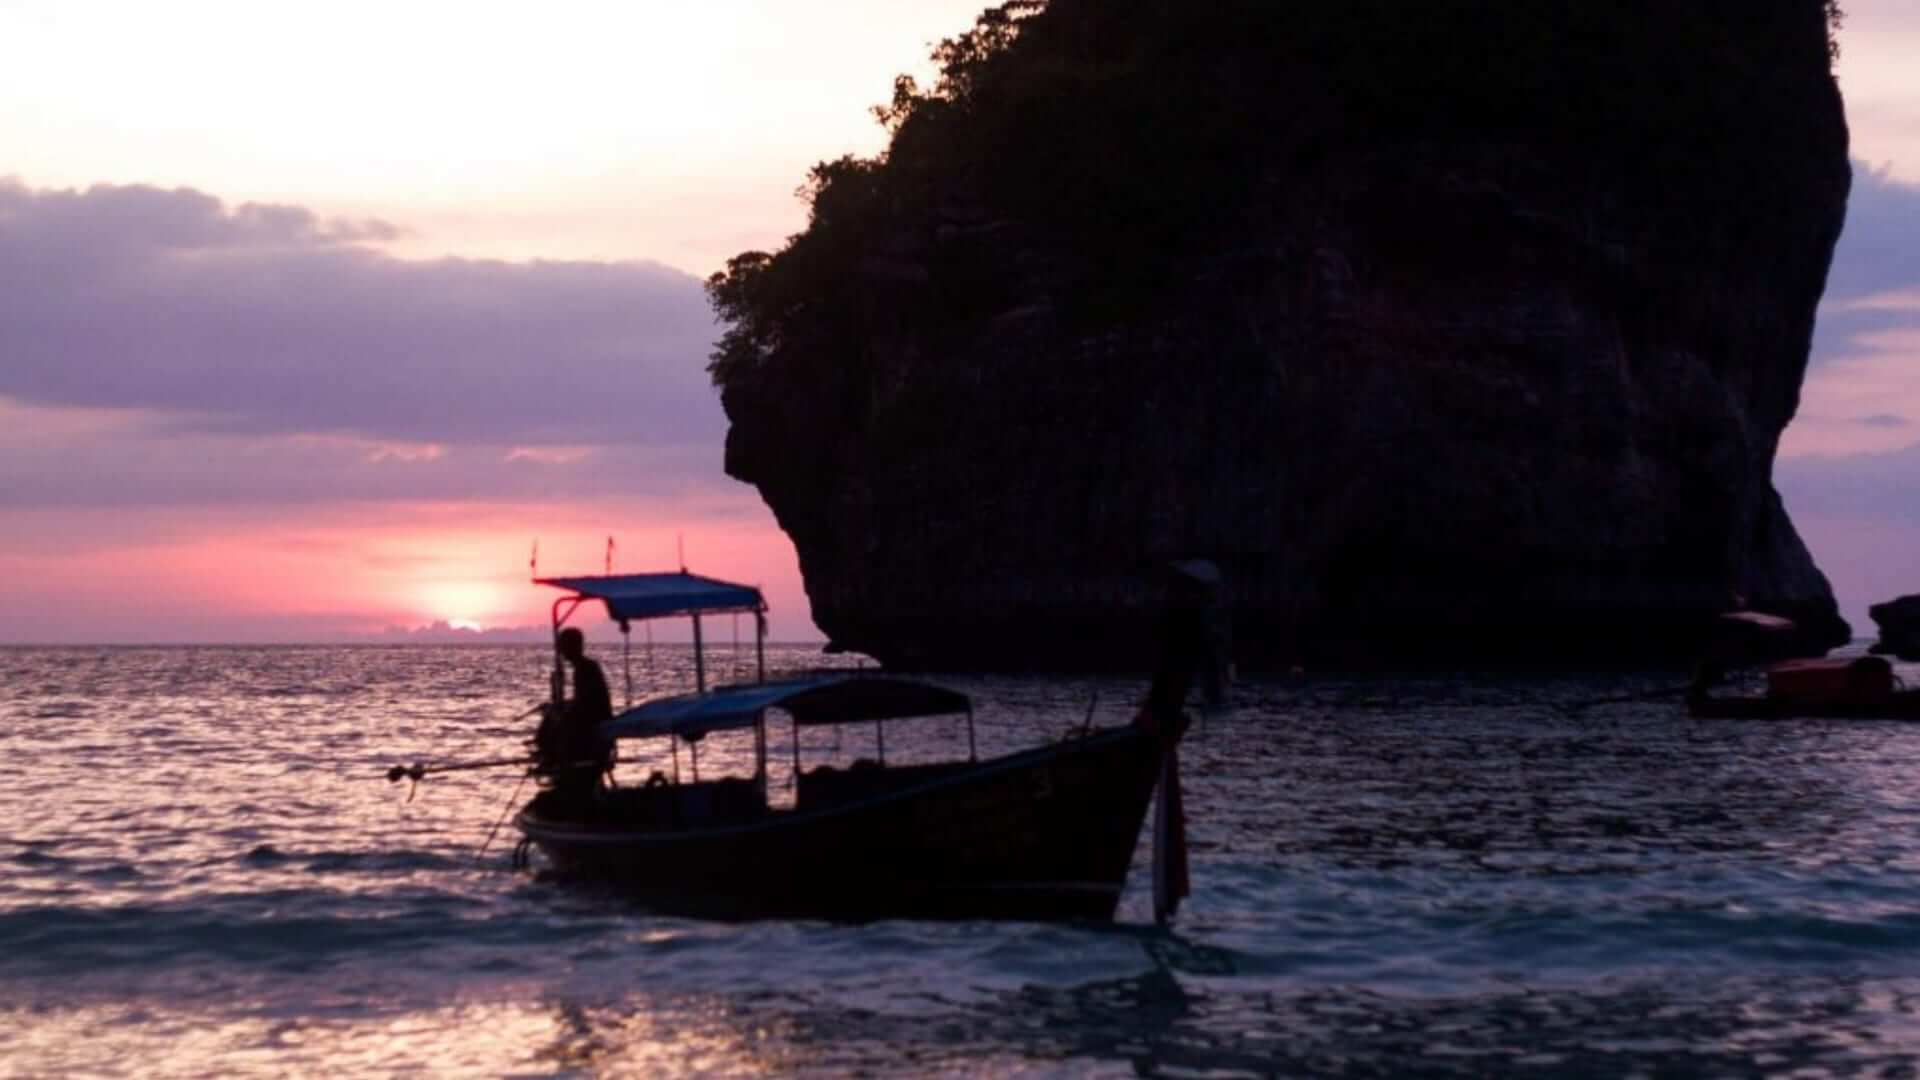 A man is fishing from a boat in front of the Phi Phi Islands during sunset in Thailand.